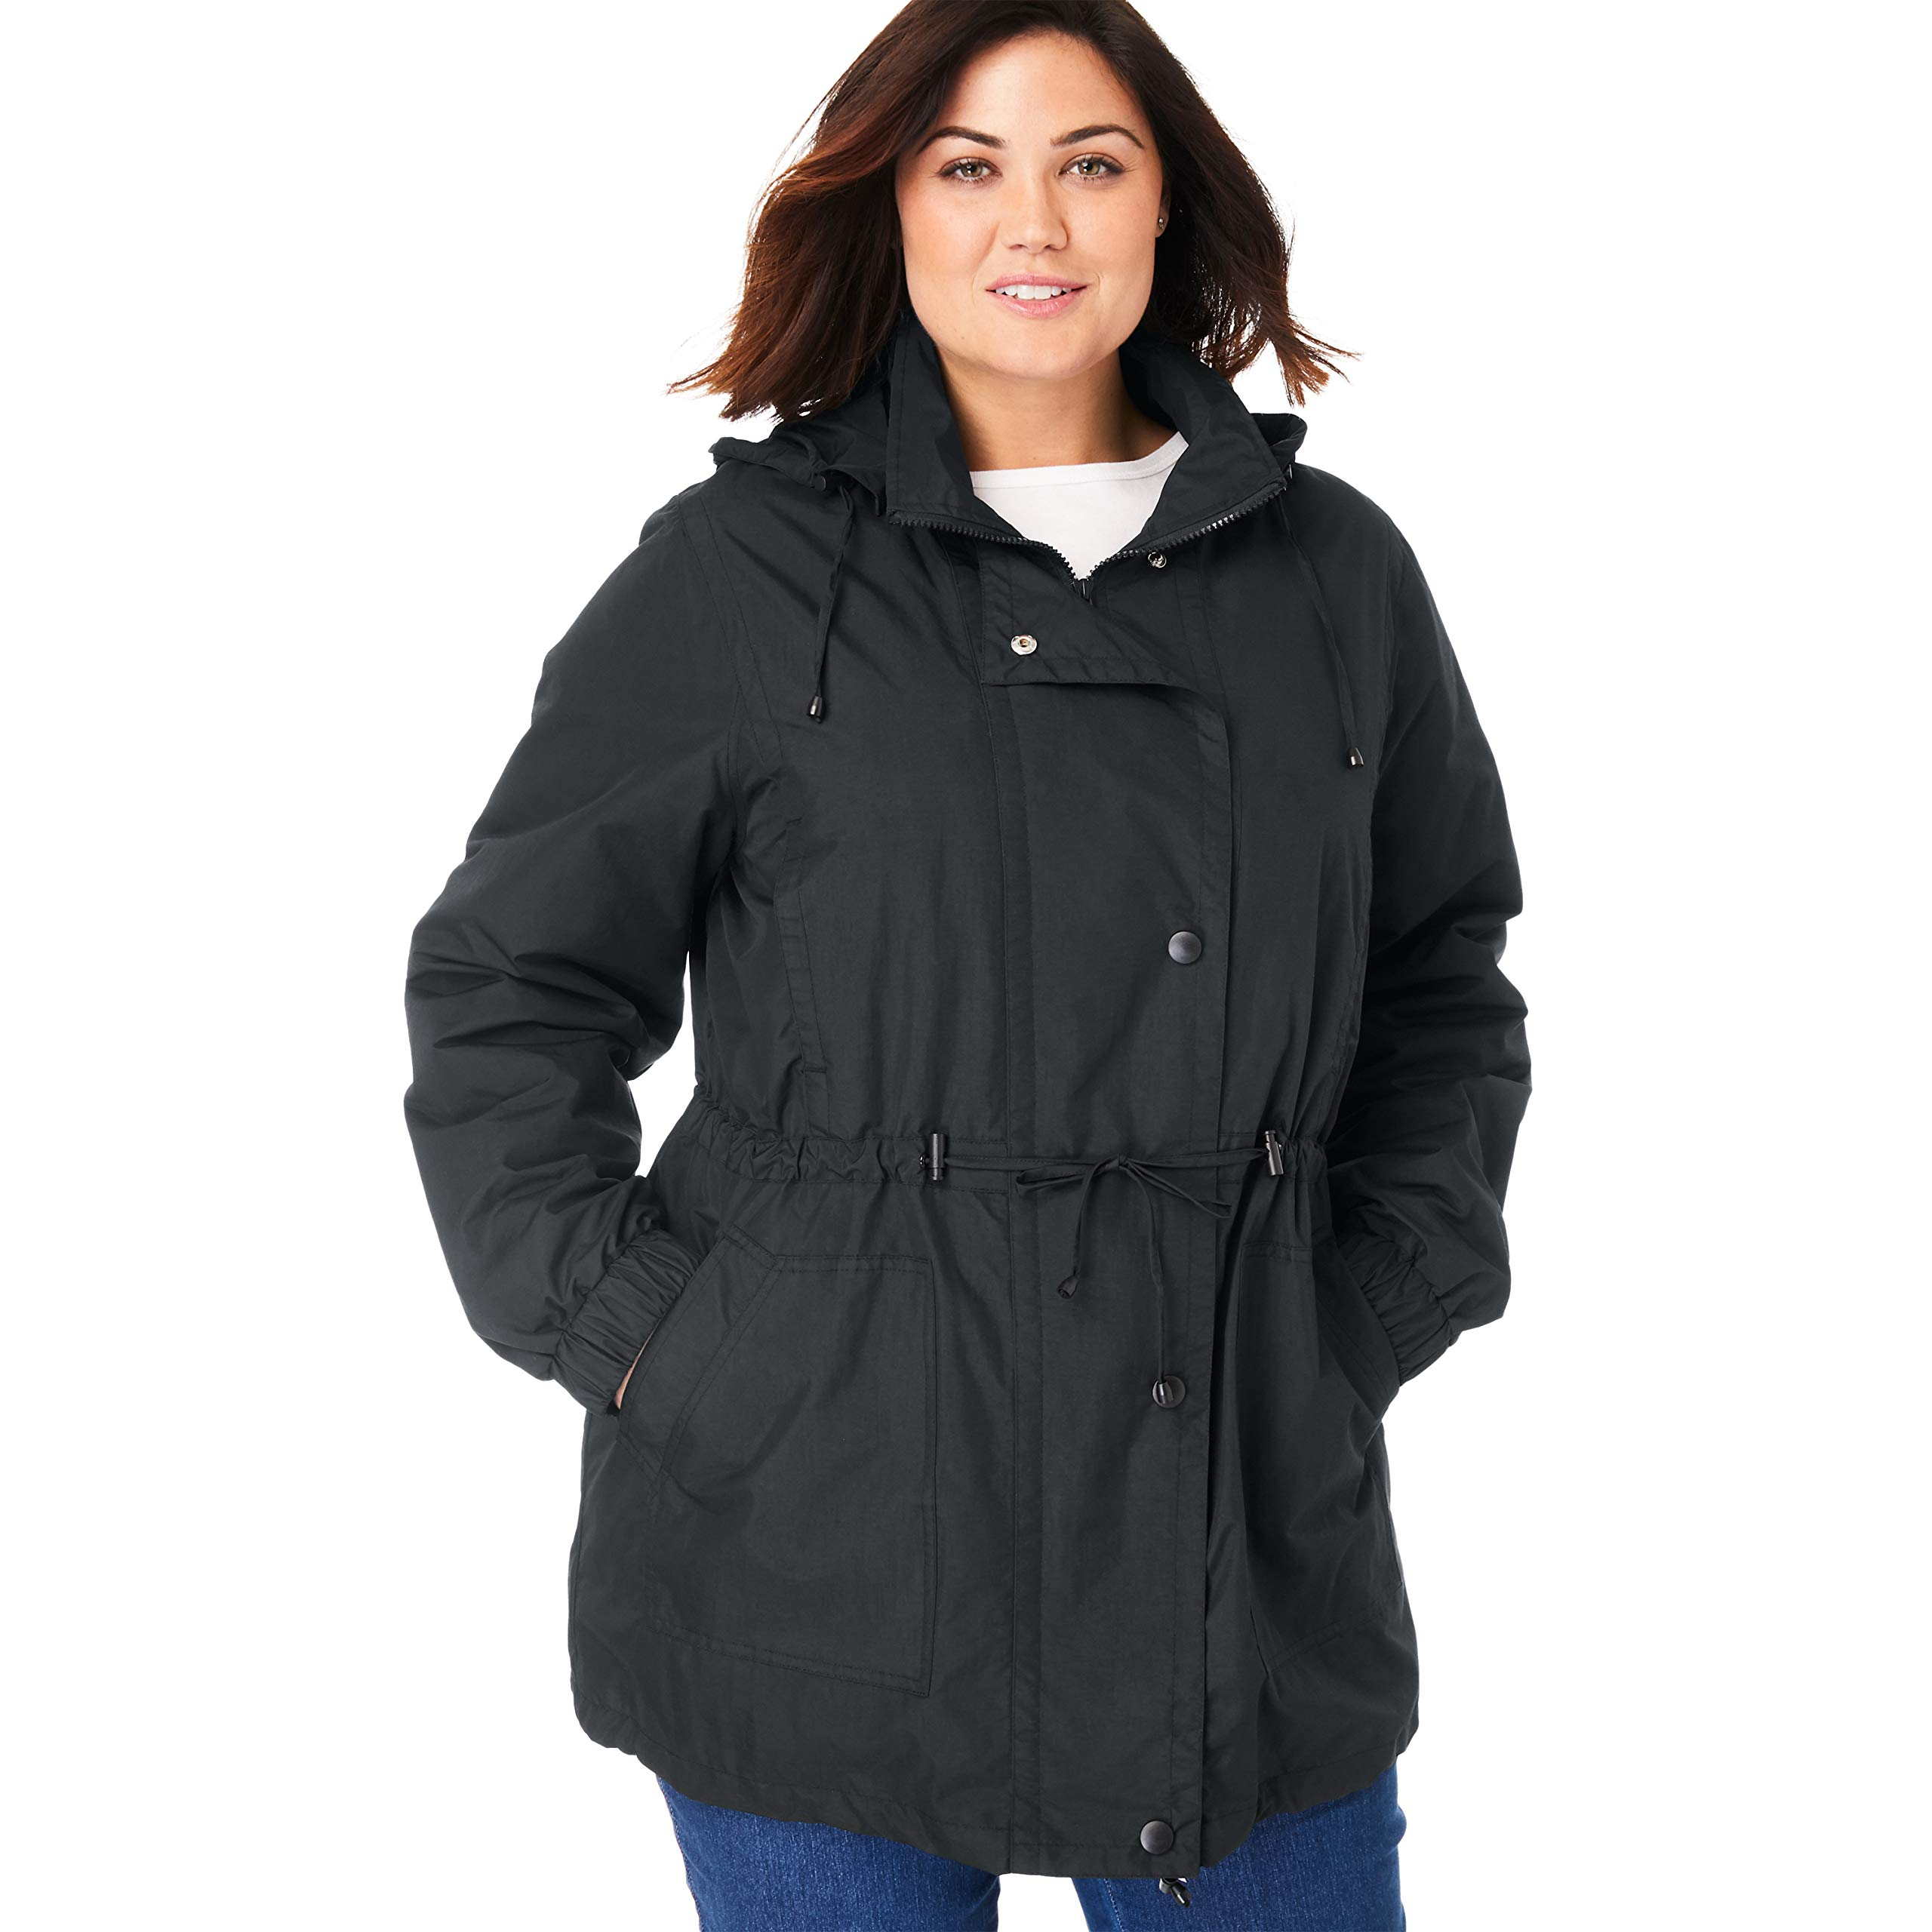 Woman Within Plus Size Women's Plus Size Fleece-Lined Taslon Anorak - Black, 2X by Woman Within